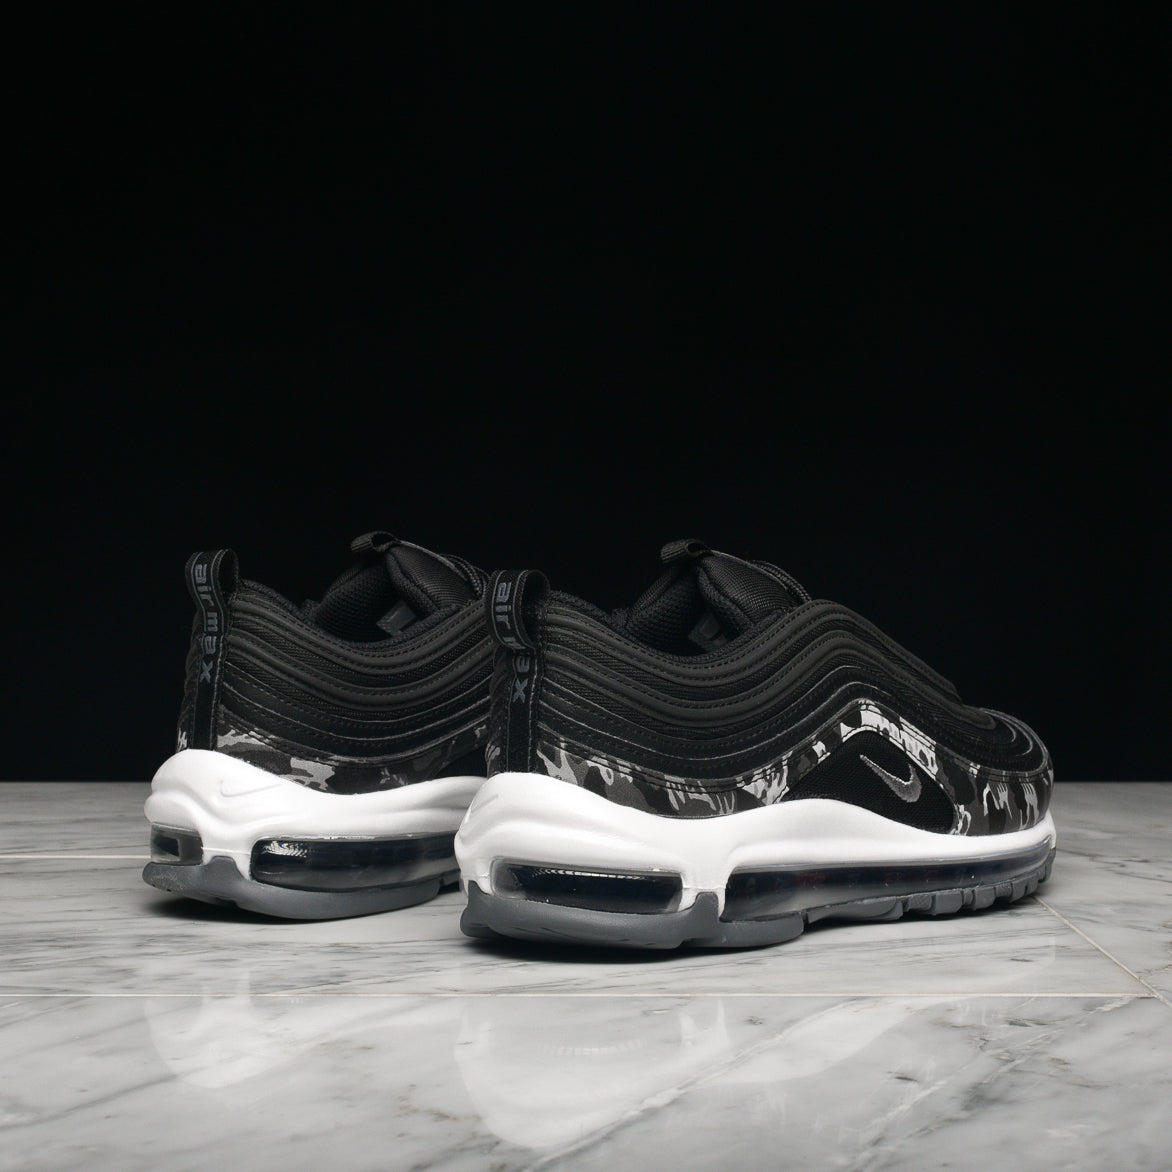 Nike Wmns Air Max 97 Premium in schwarz 917646 005 | everysize